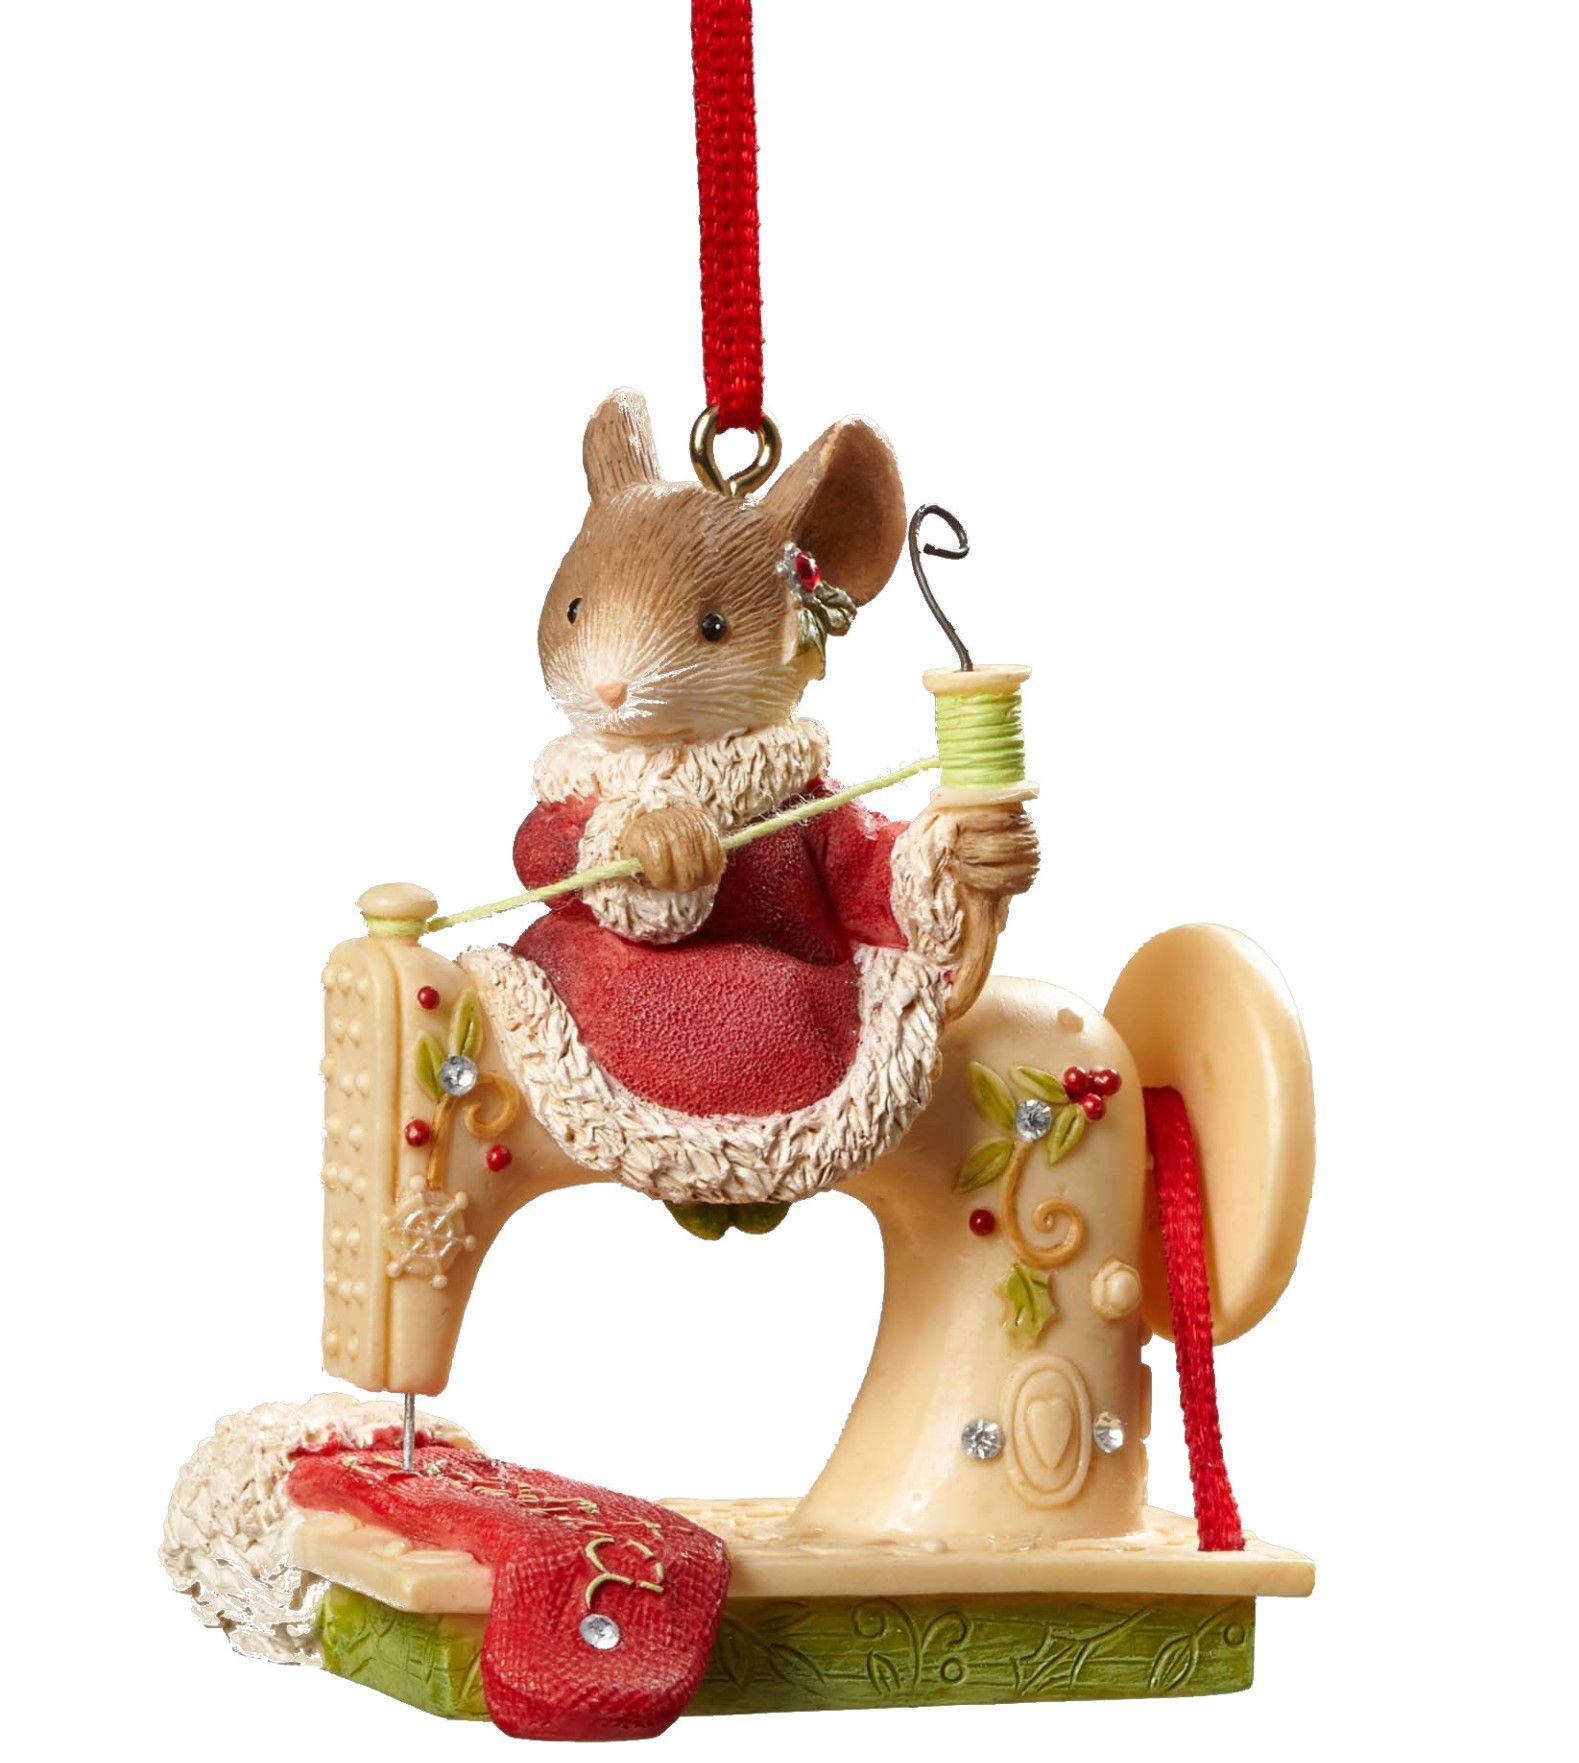 MOUSE SEWING MACHINE ORNAMENT